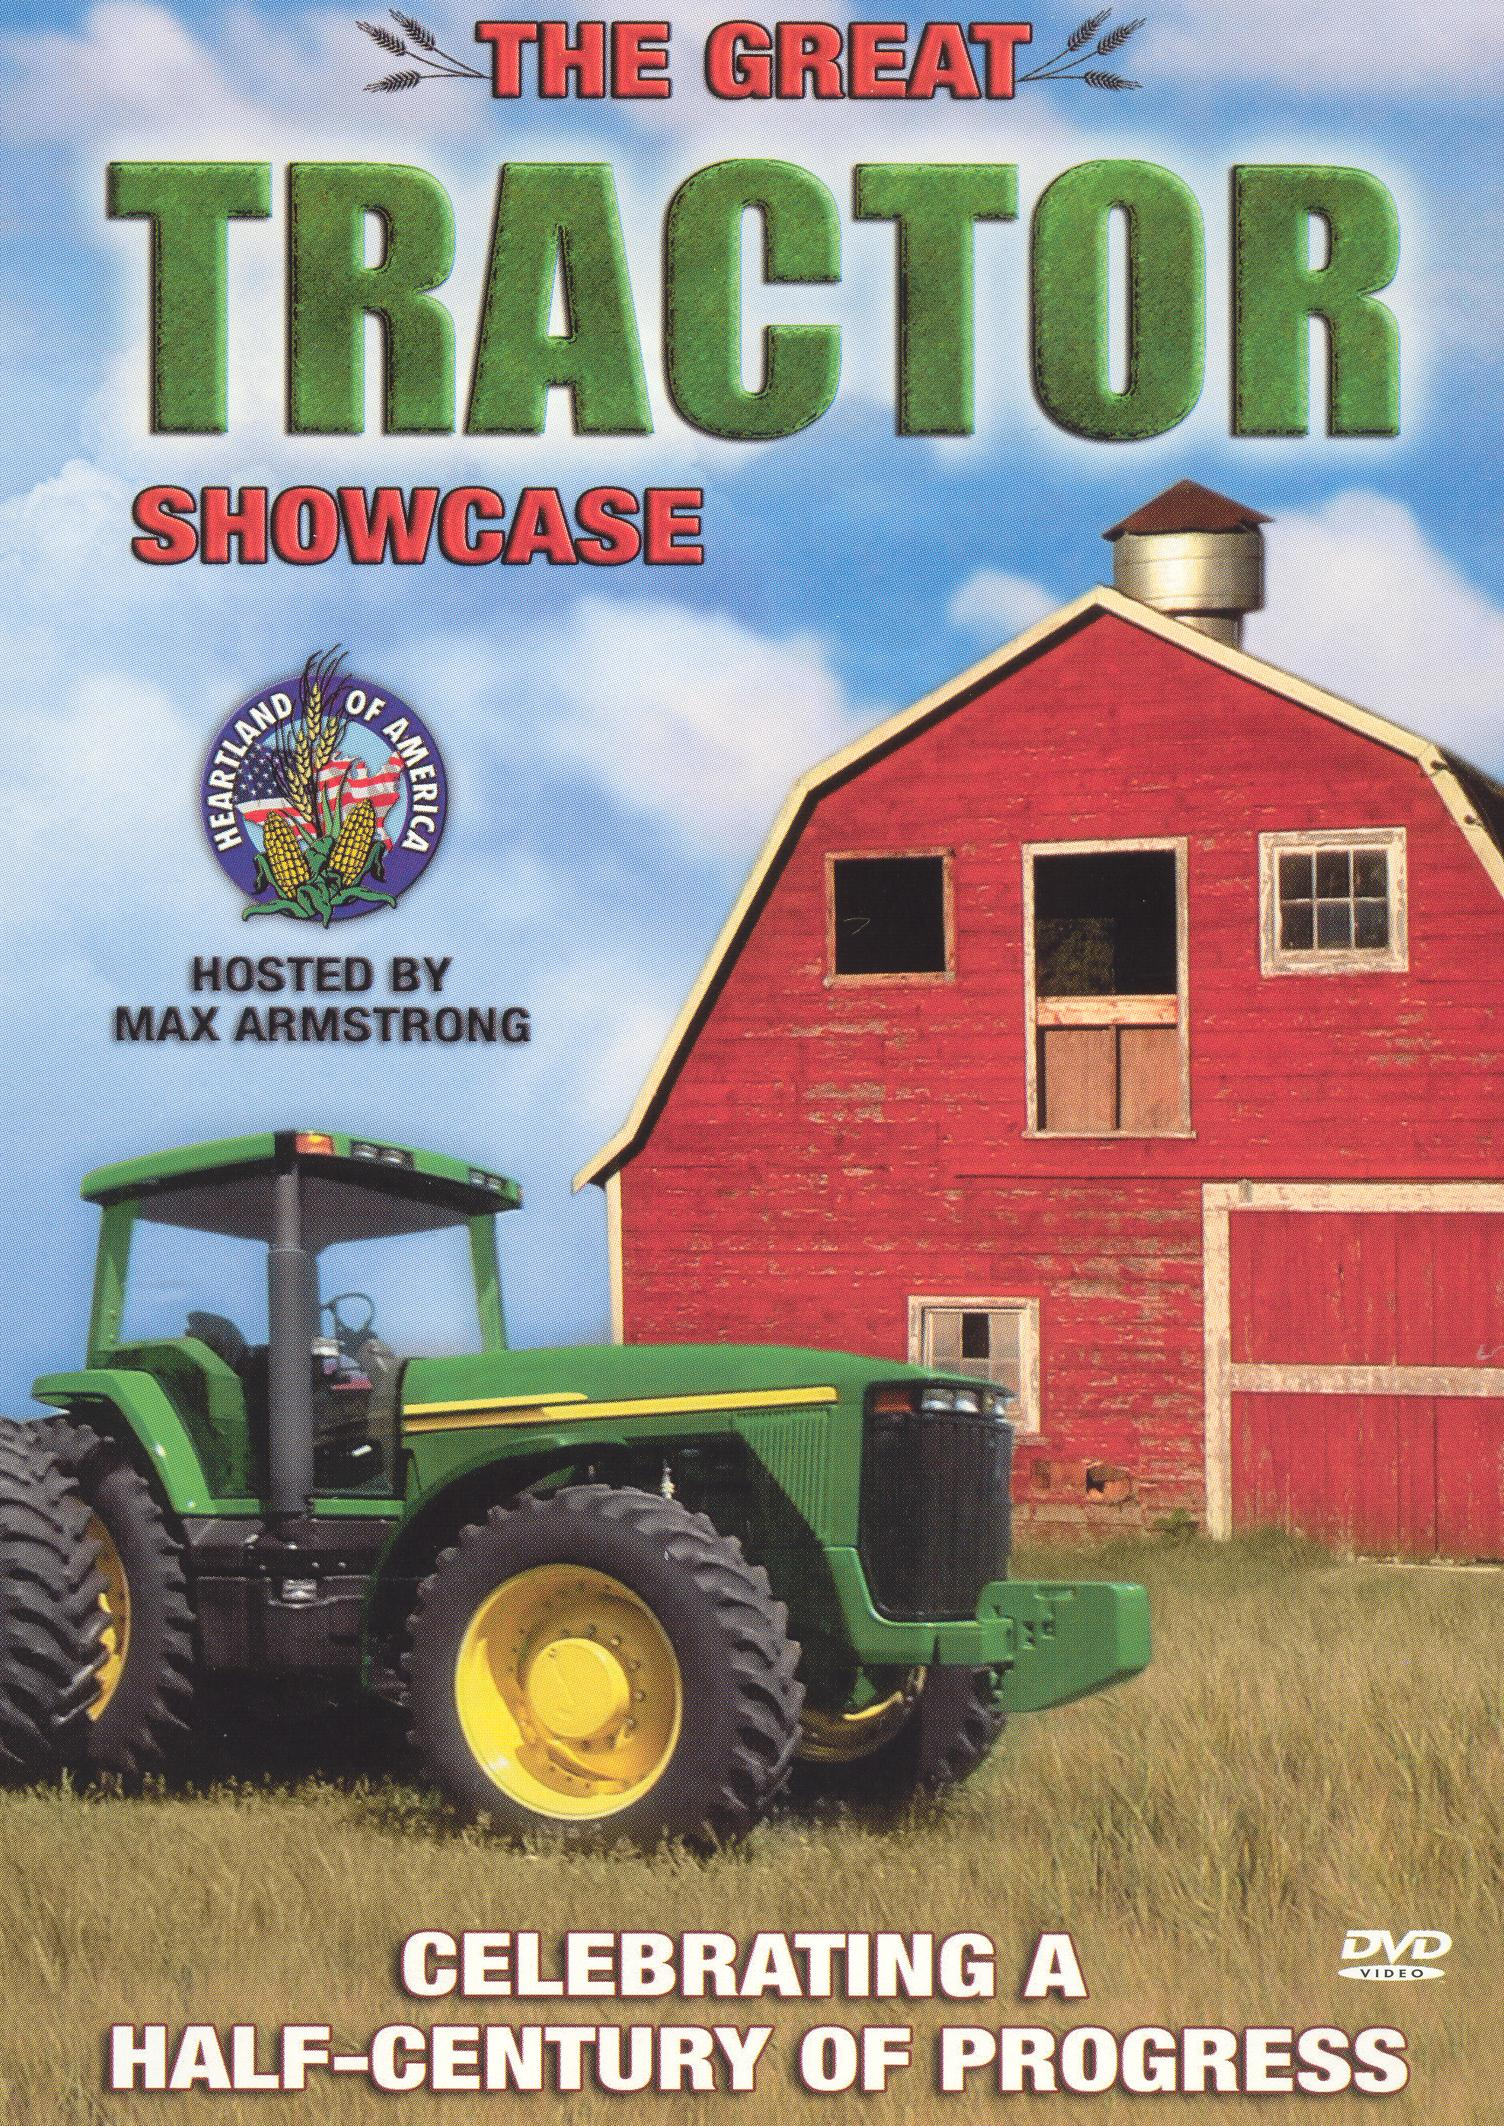 Great Tractor Showcase: Celebrating a Half-Century of Progress